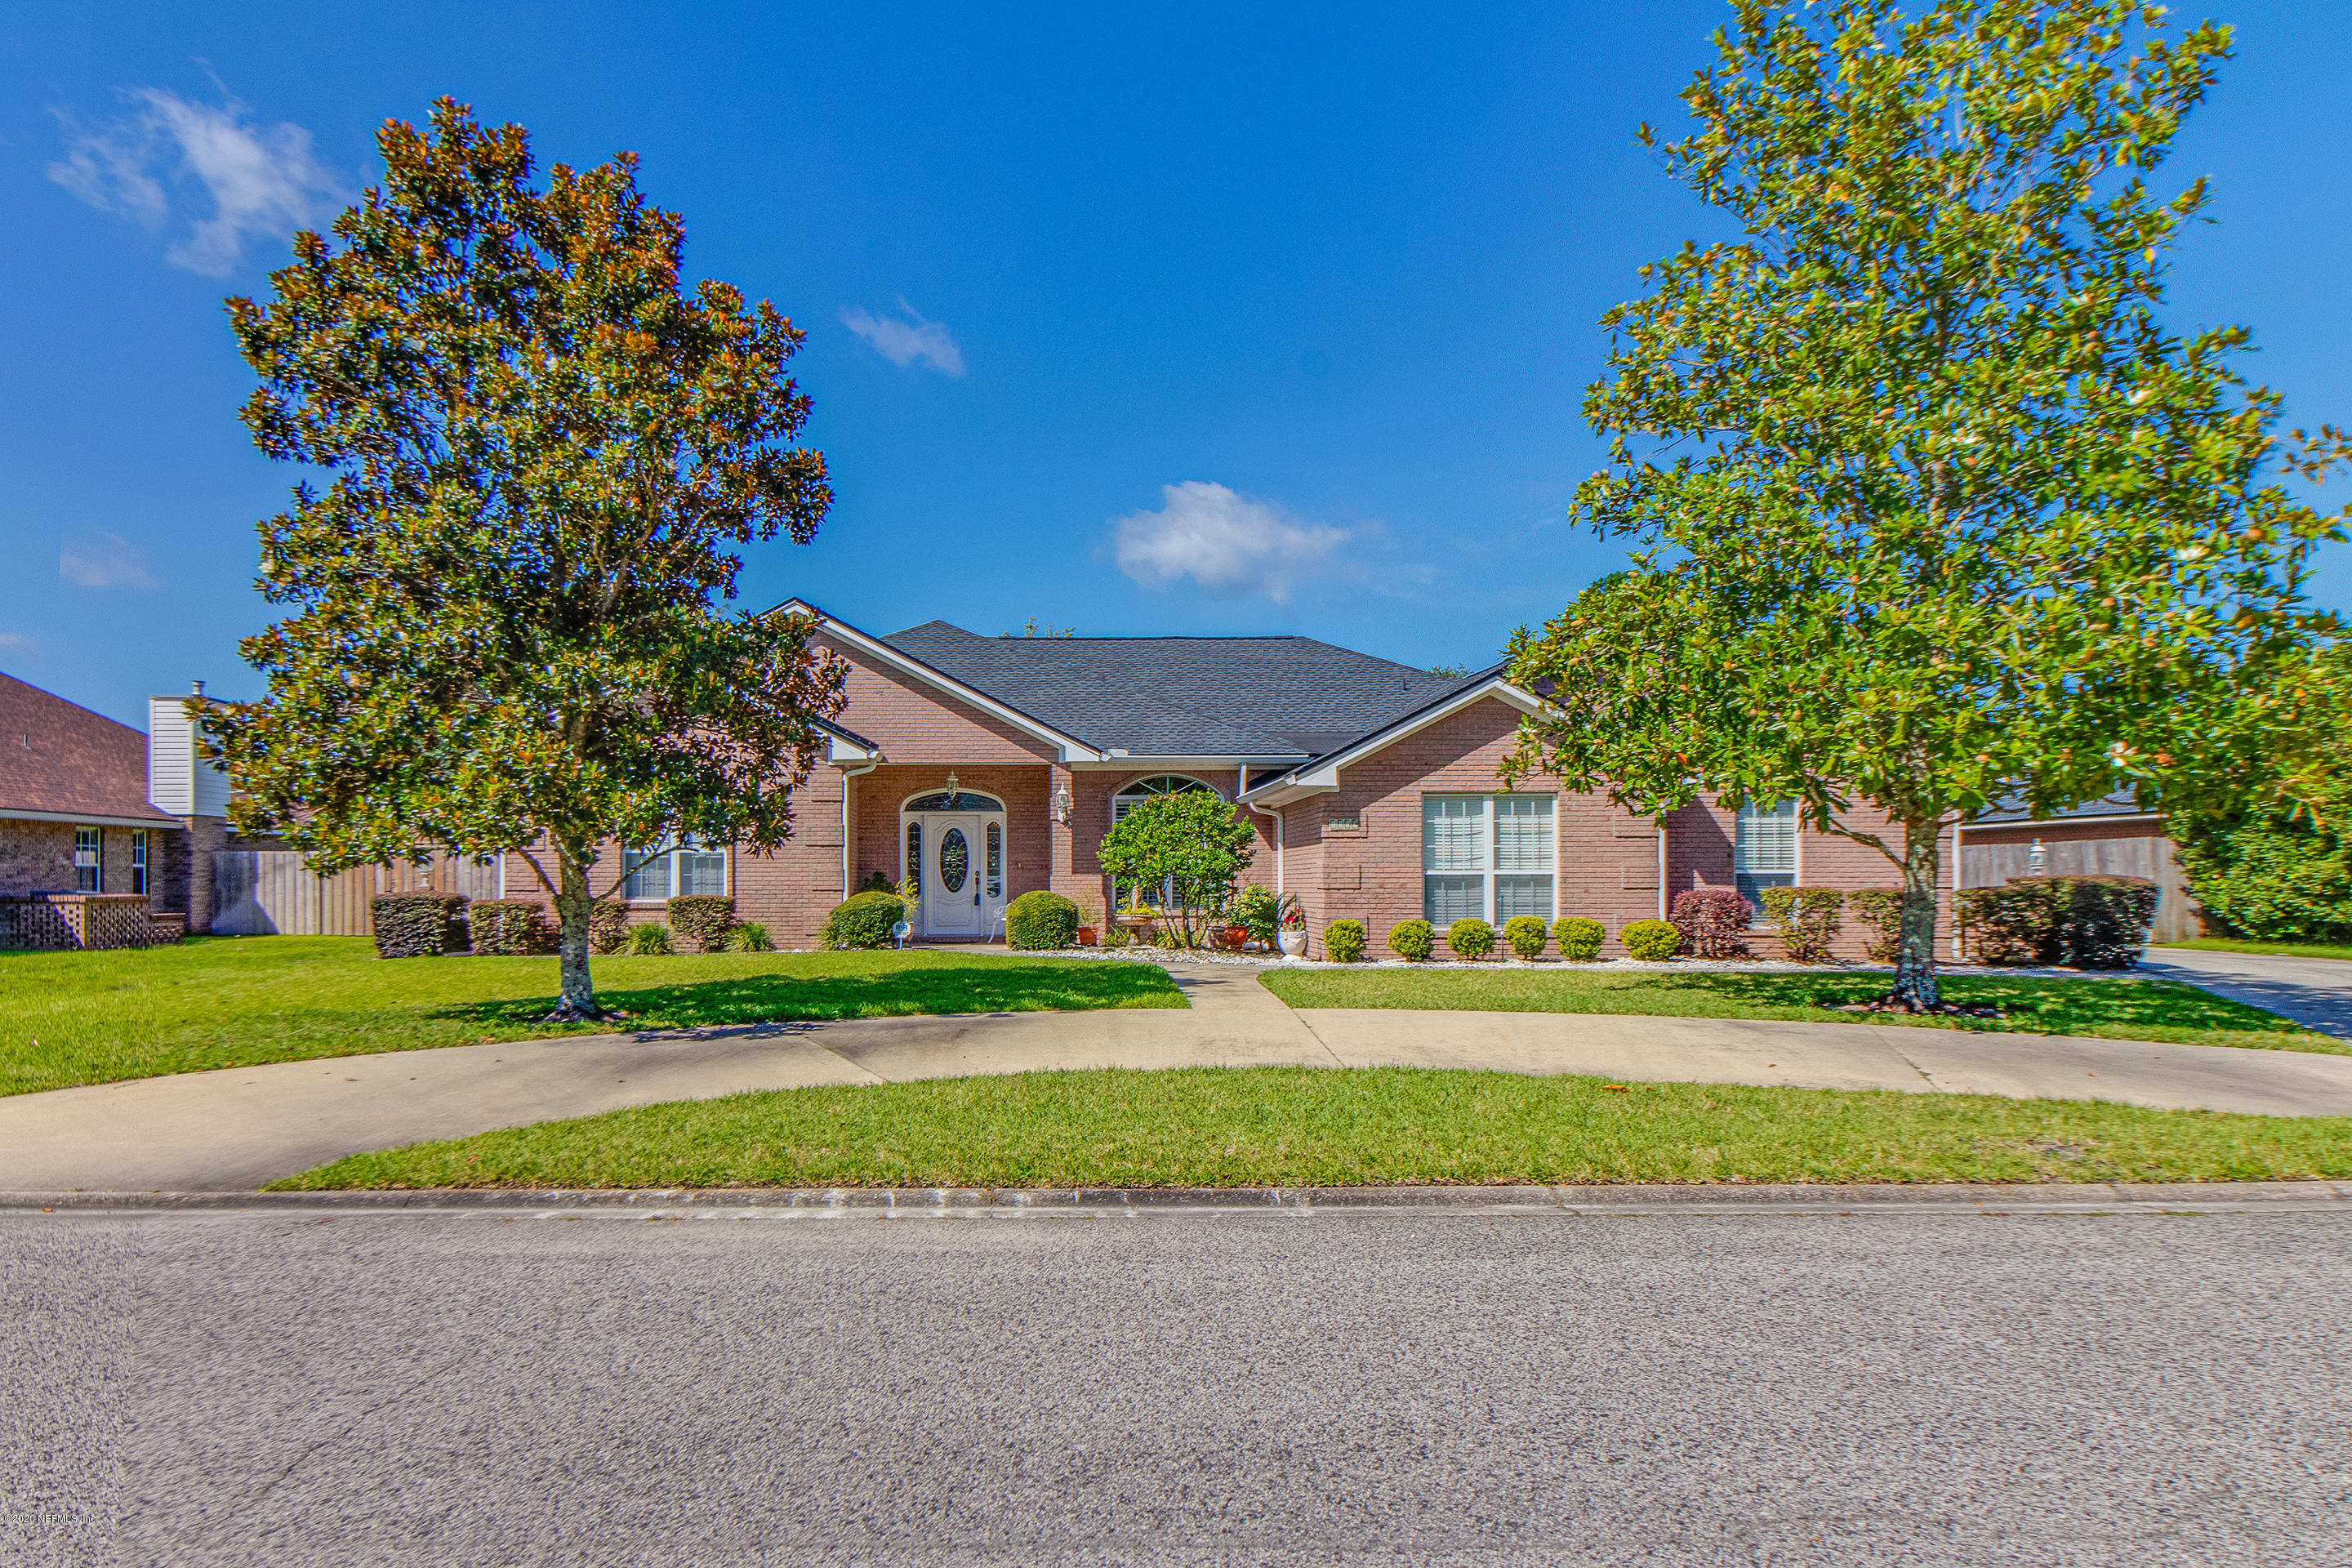 Details for 1119 Copperfield Cir, MACCLENNY, FL 32063